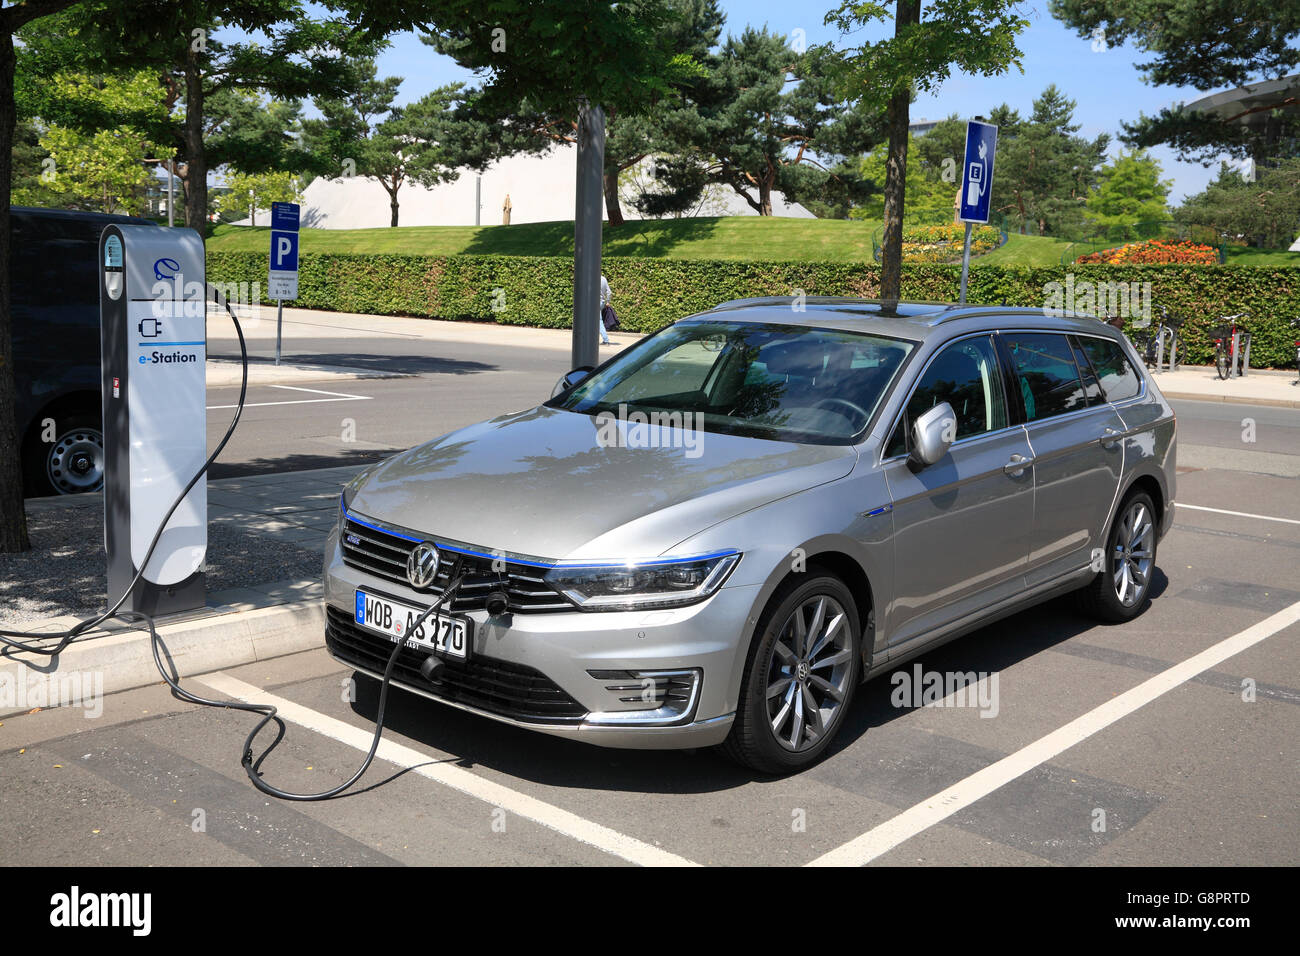 Wolfsburg, VW Autostadt , VW Passat e-car at charge station, Lower Saxony, Germany, Europe - Stock Image